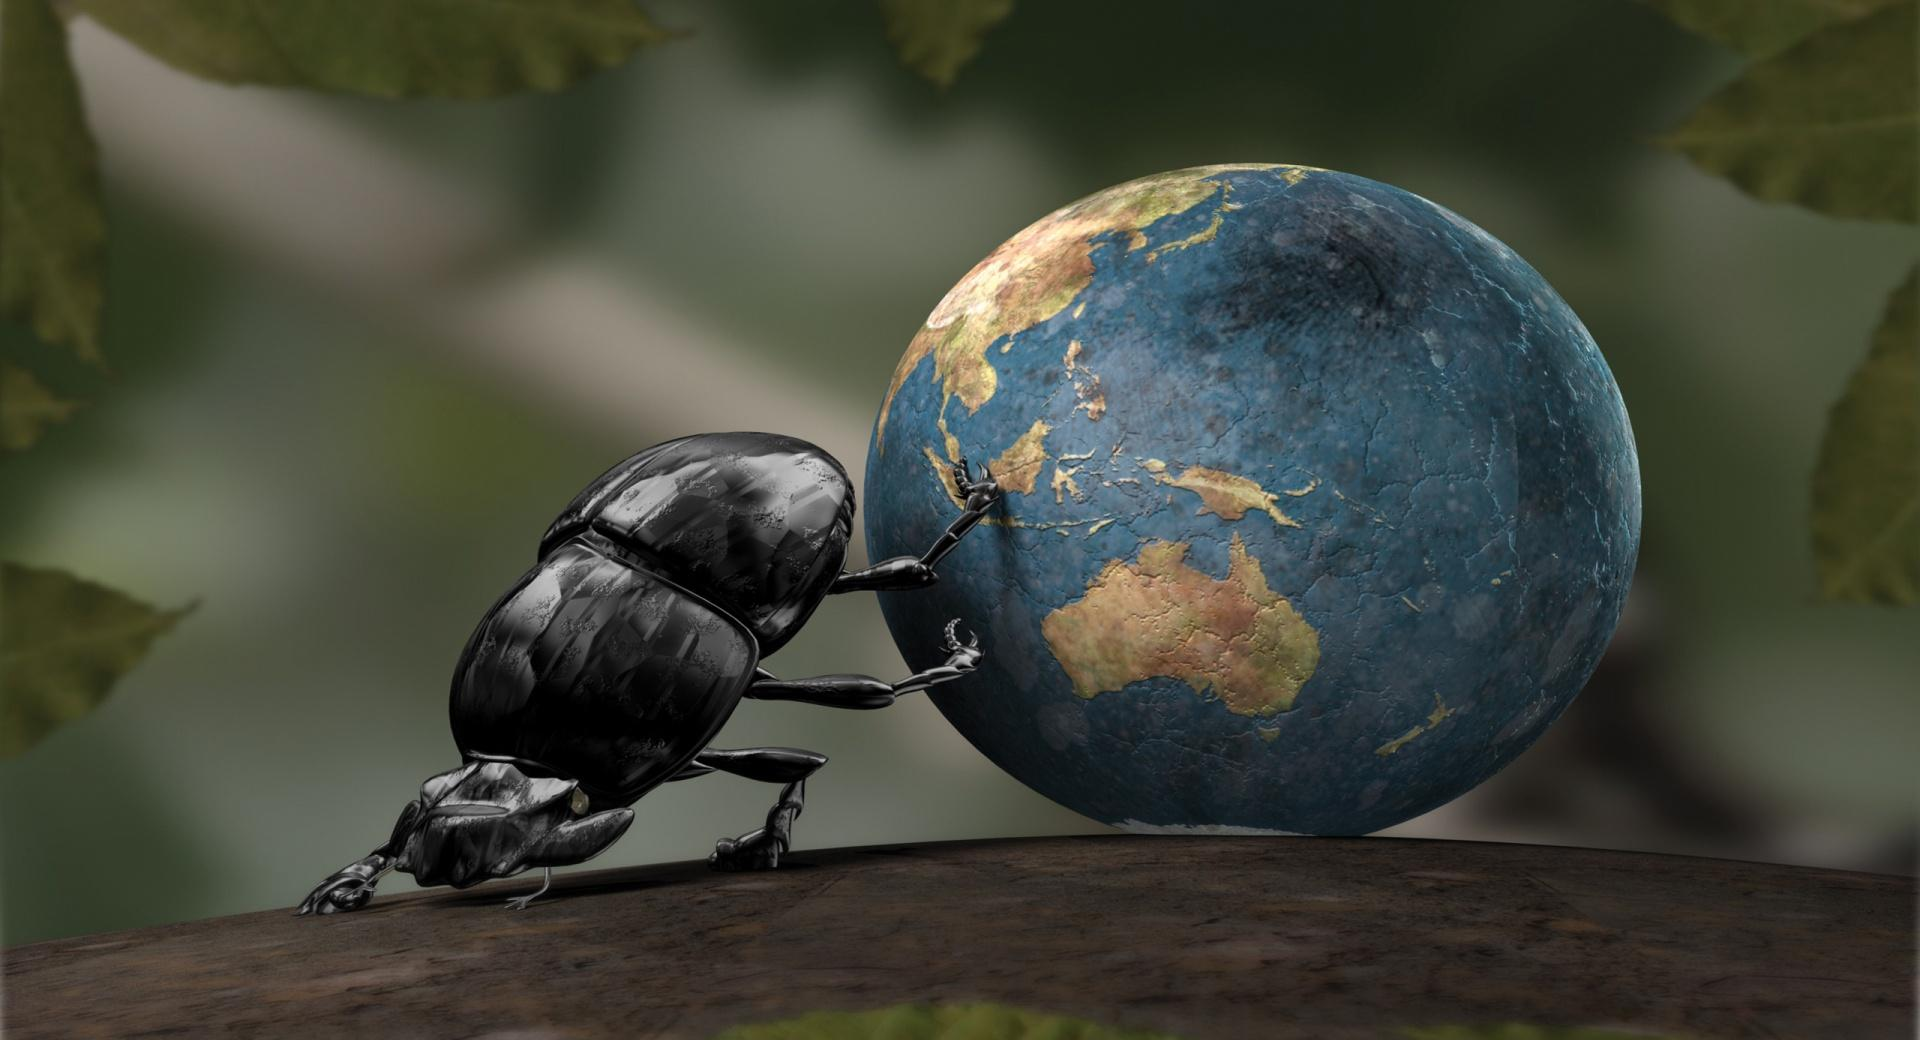 Beetle Illustration wallpapers HD quality